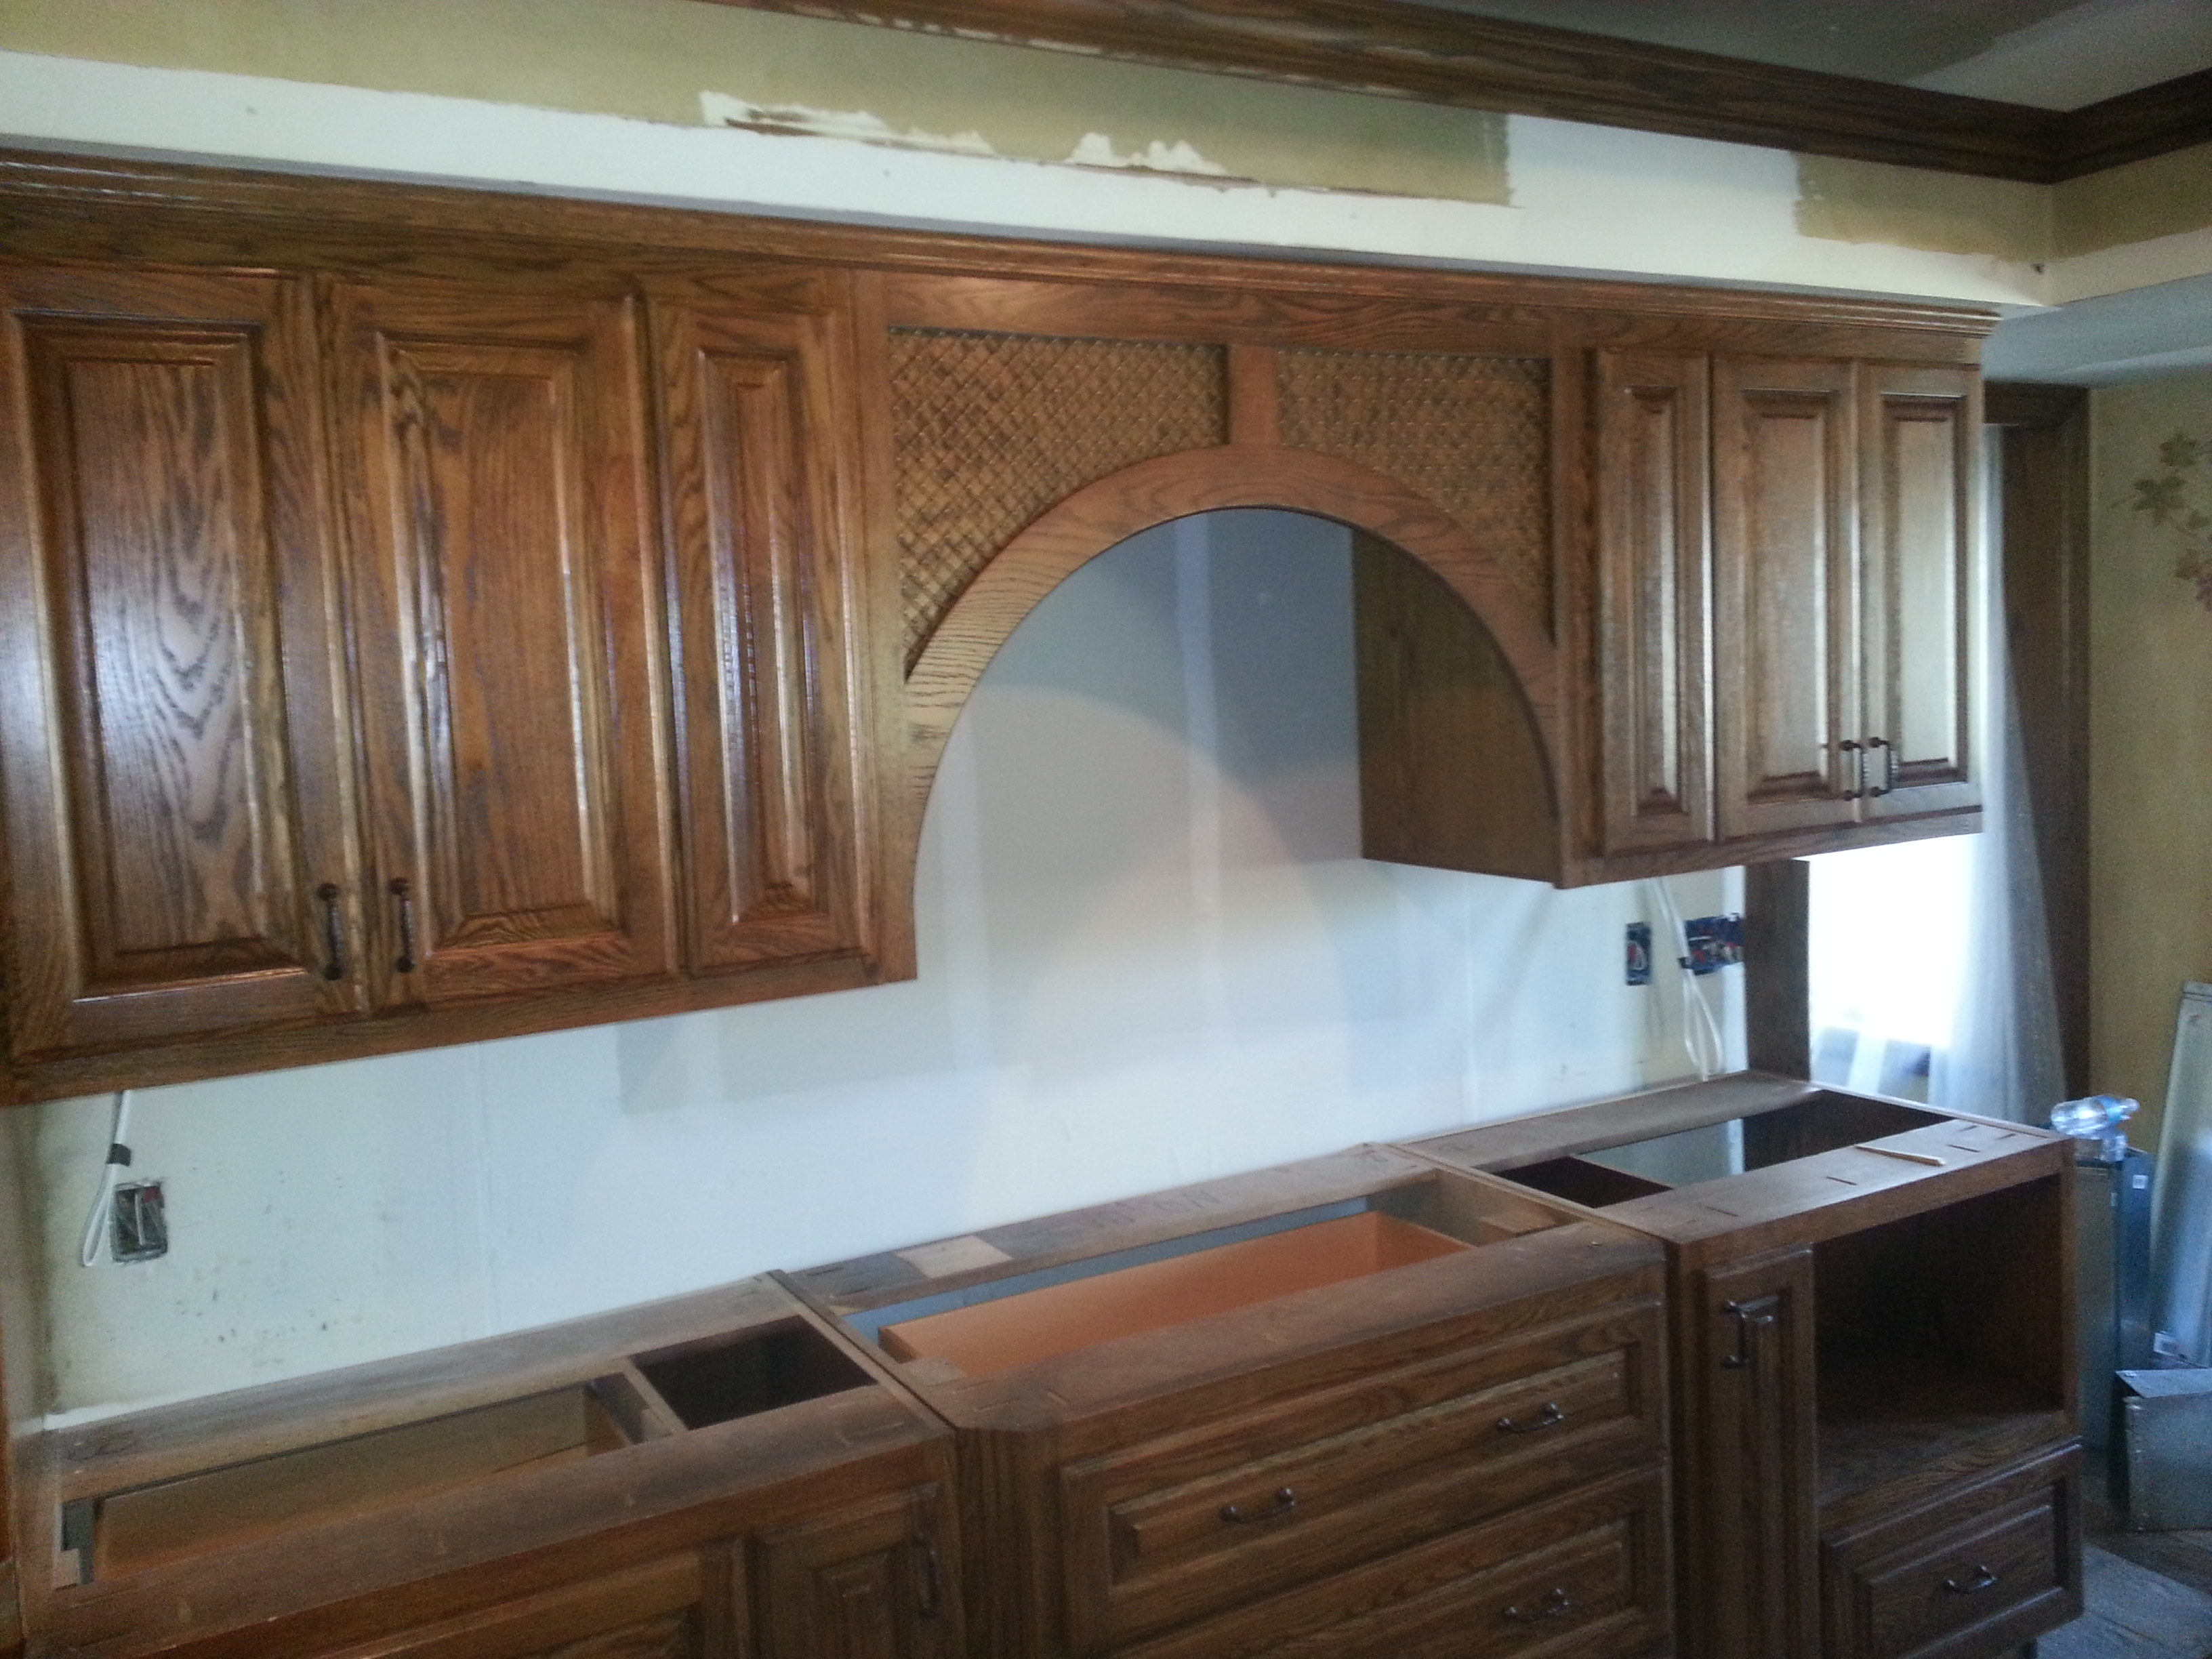 kitchen cabinets in southern california c and l designs custom kitchen designs a1 kitchen cabinets ltd   28 images   a1      rh   countryliving es ht